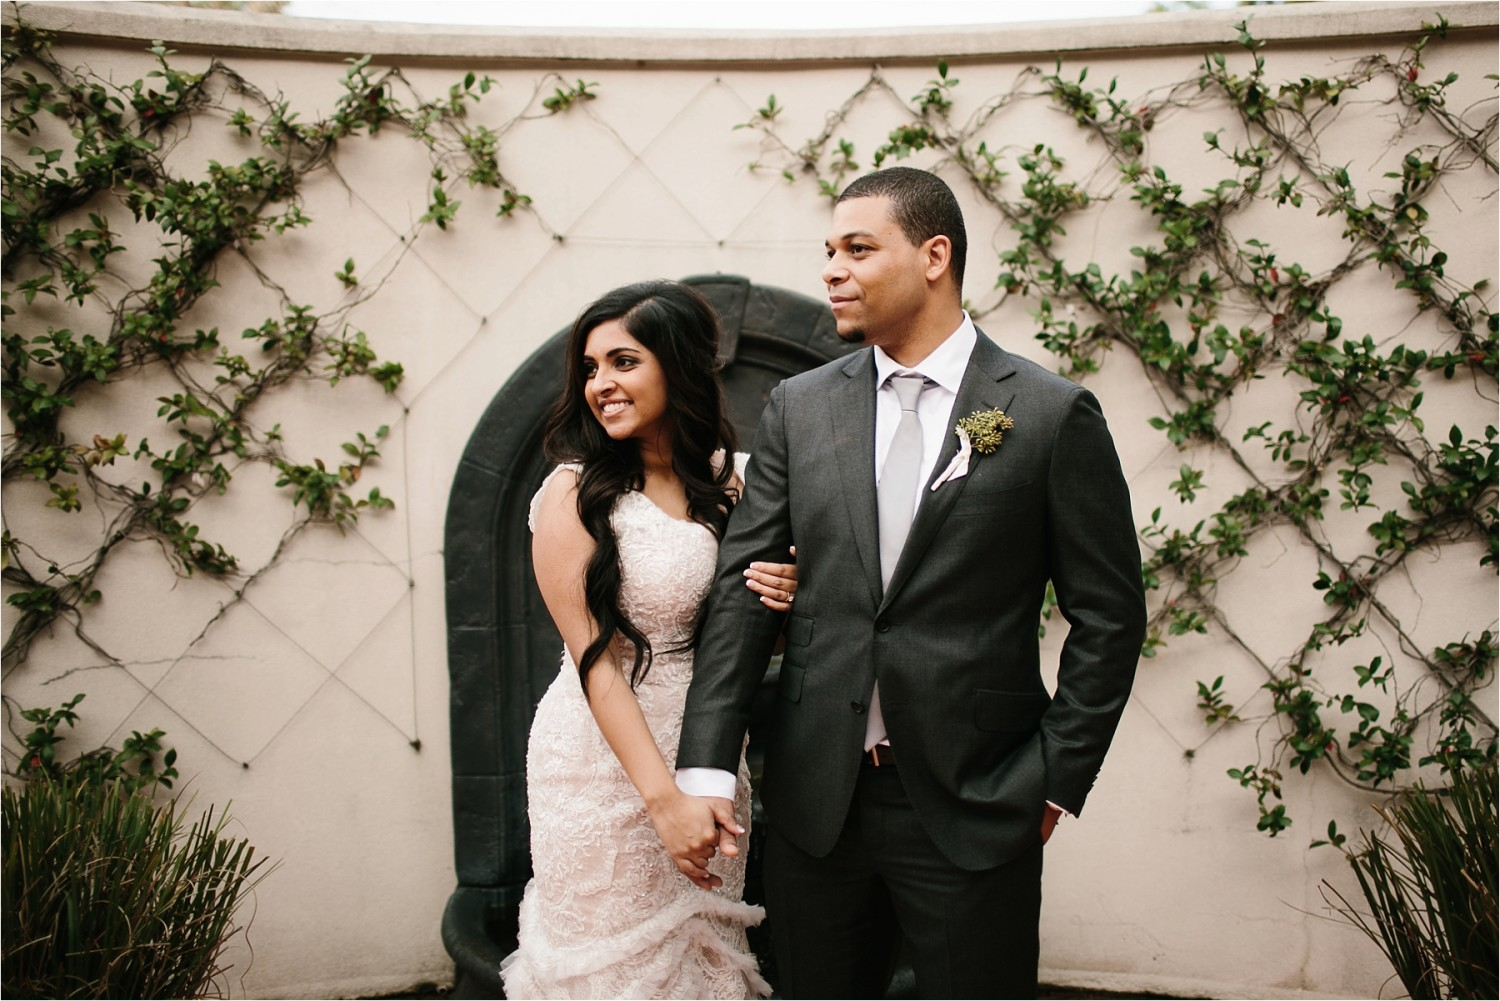 Jeanpaul + Ann __ a colorful wedding at Ashton Gardens in Houston TX by North Texas Wedding Photographer Rachel Meagan Photography _ 51